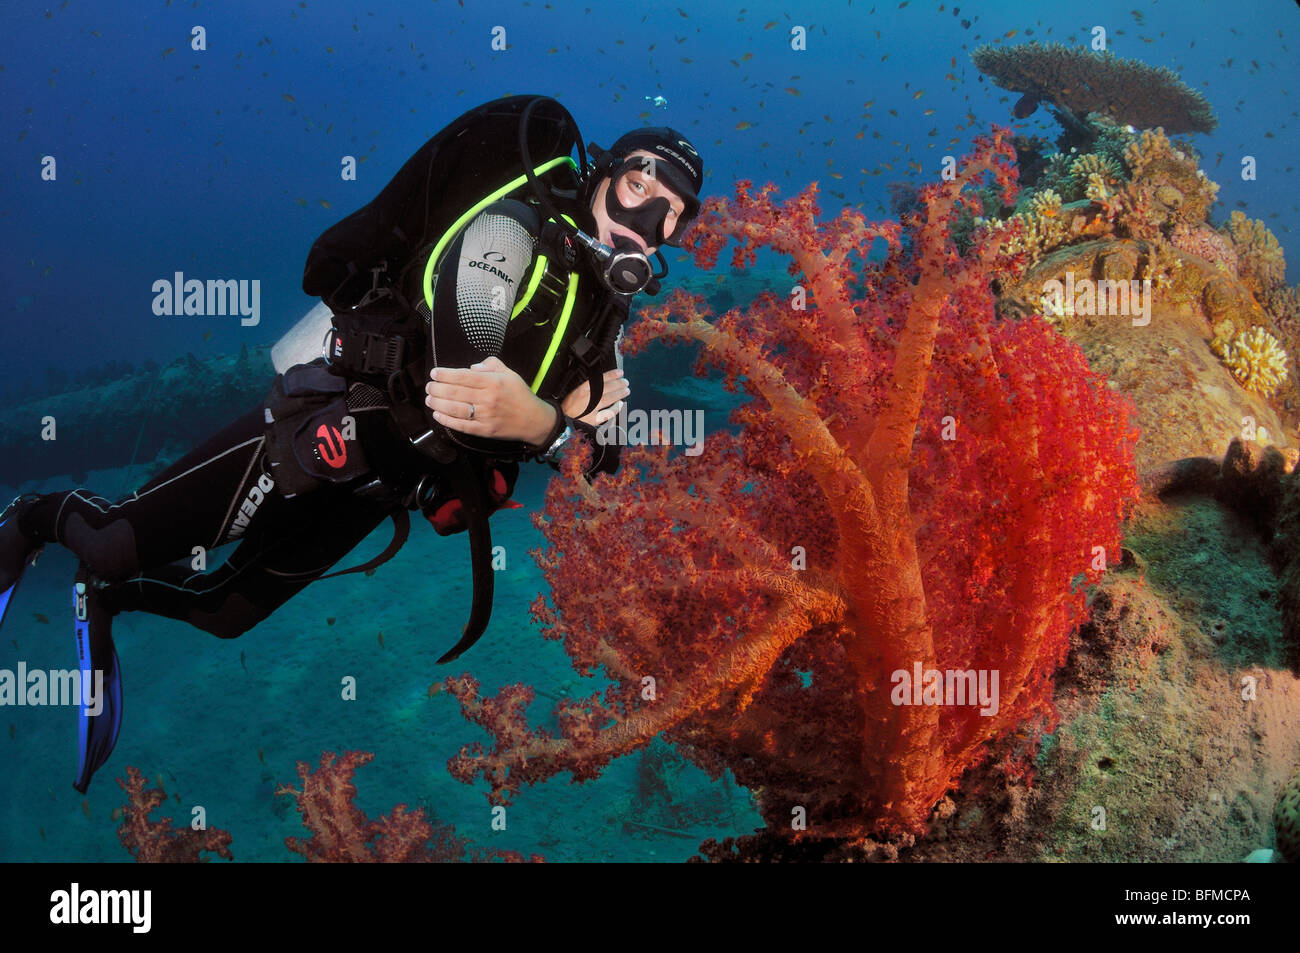 Scuba diver MFO Pipeline dive site with soft corals, Nuweiba, Red Sea, Egypt Stock Photo